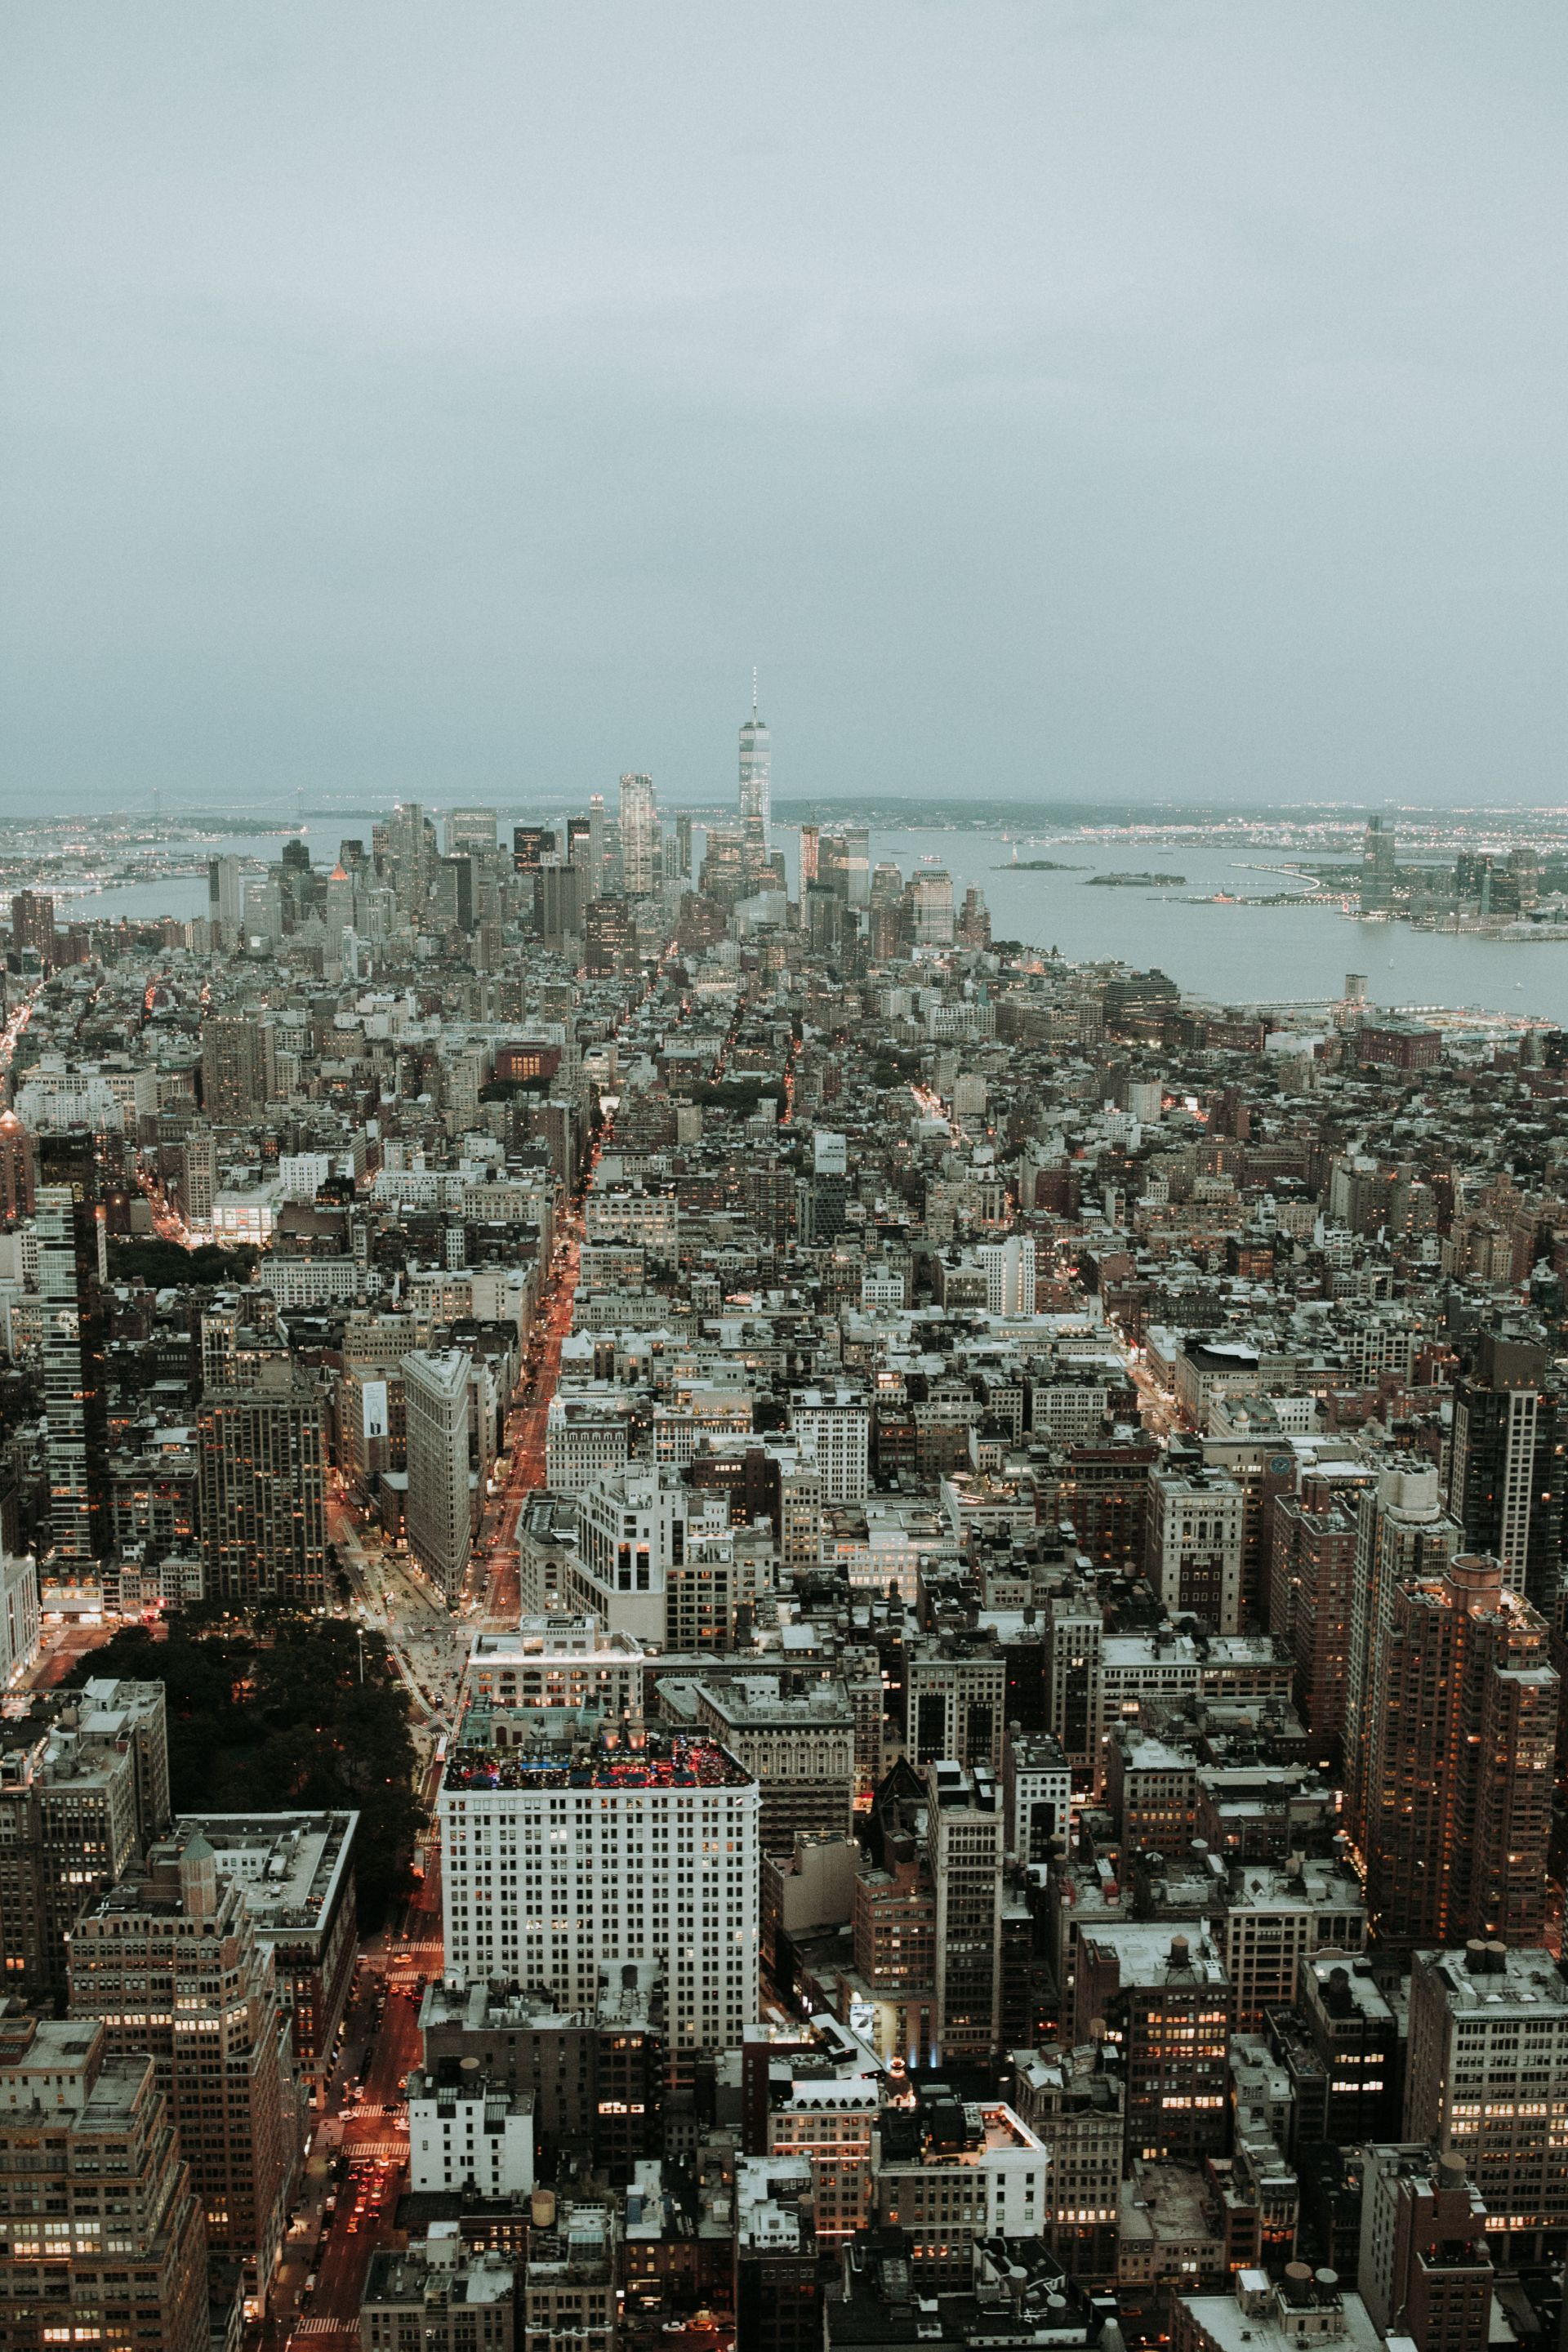 Top of the Empire State Building, NYC